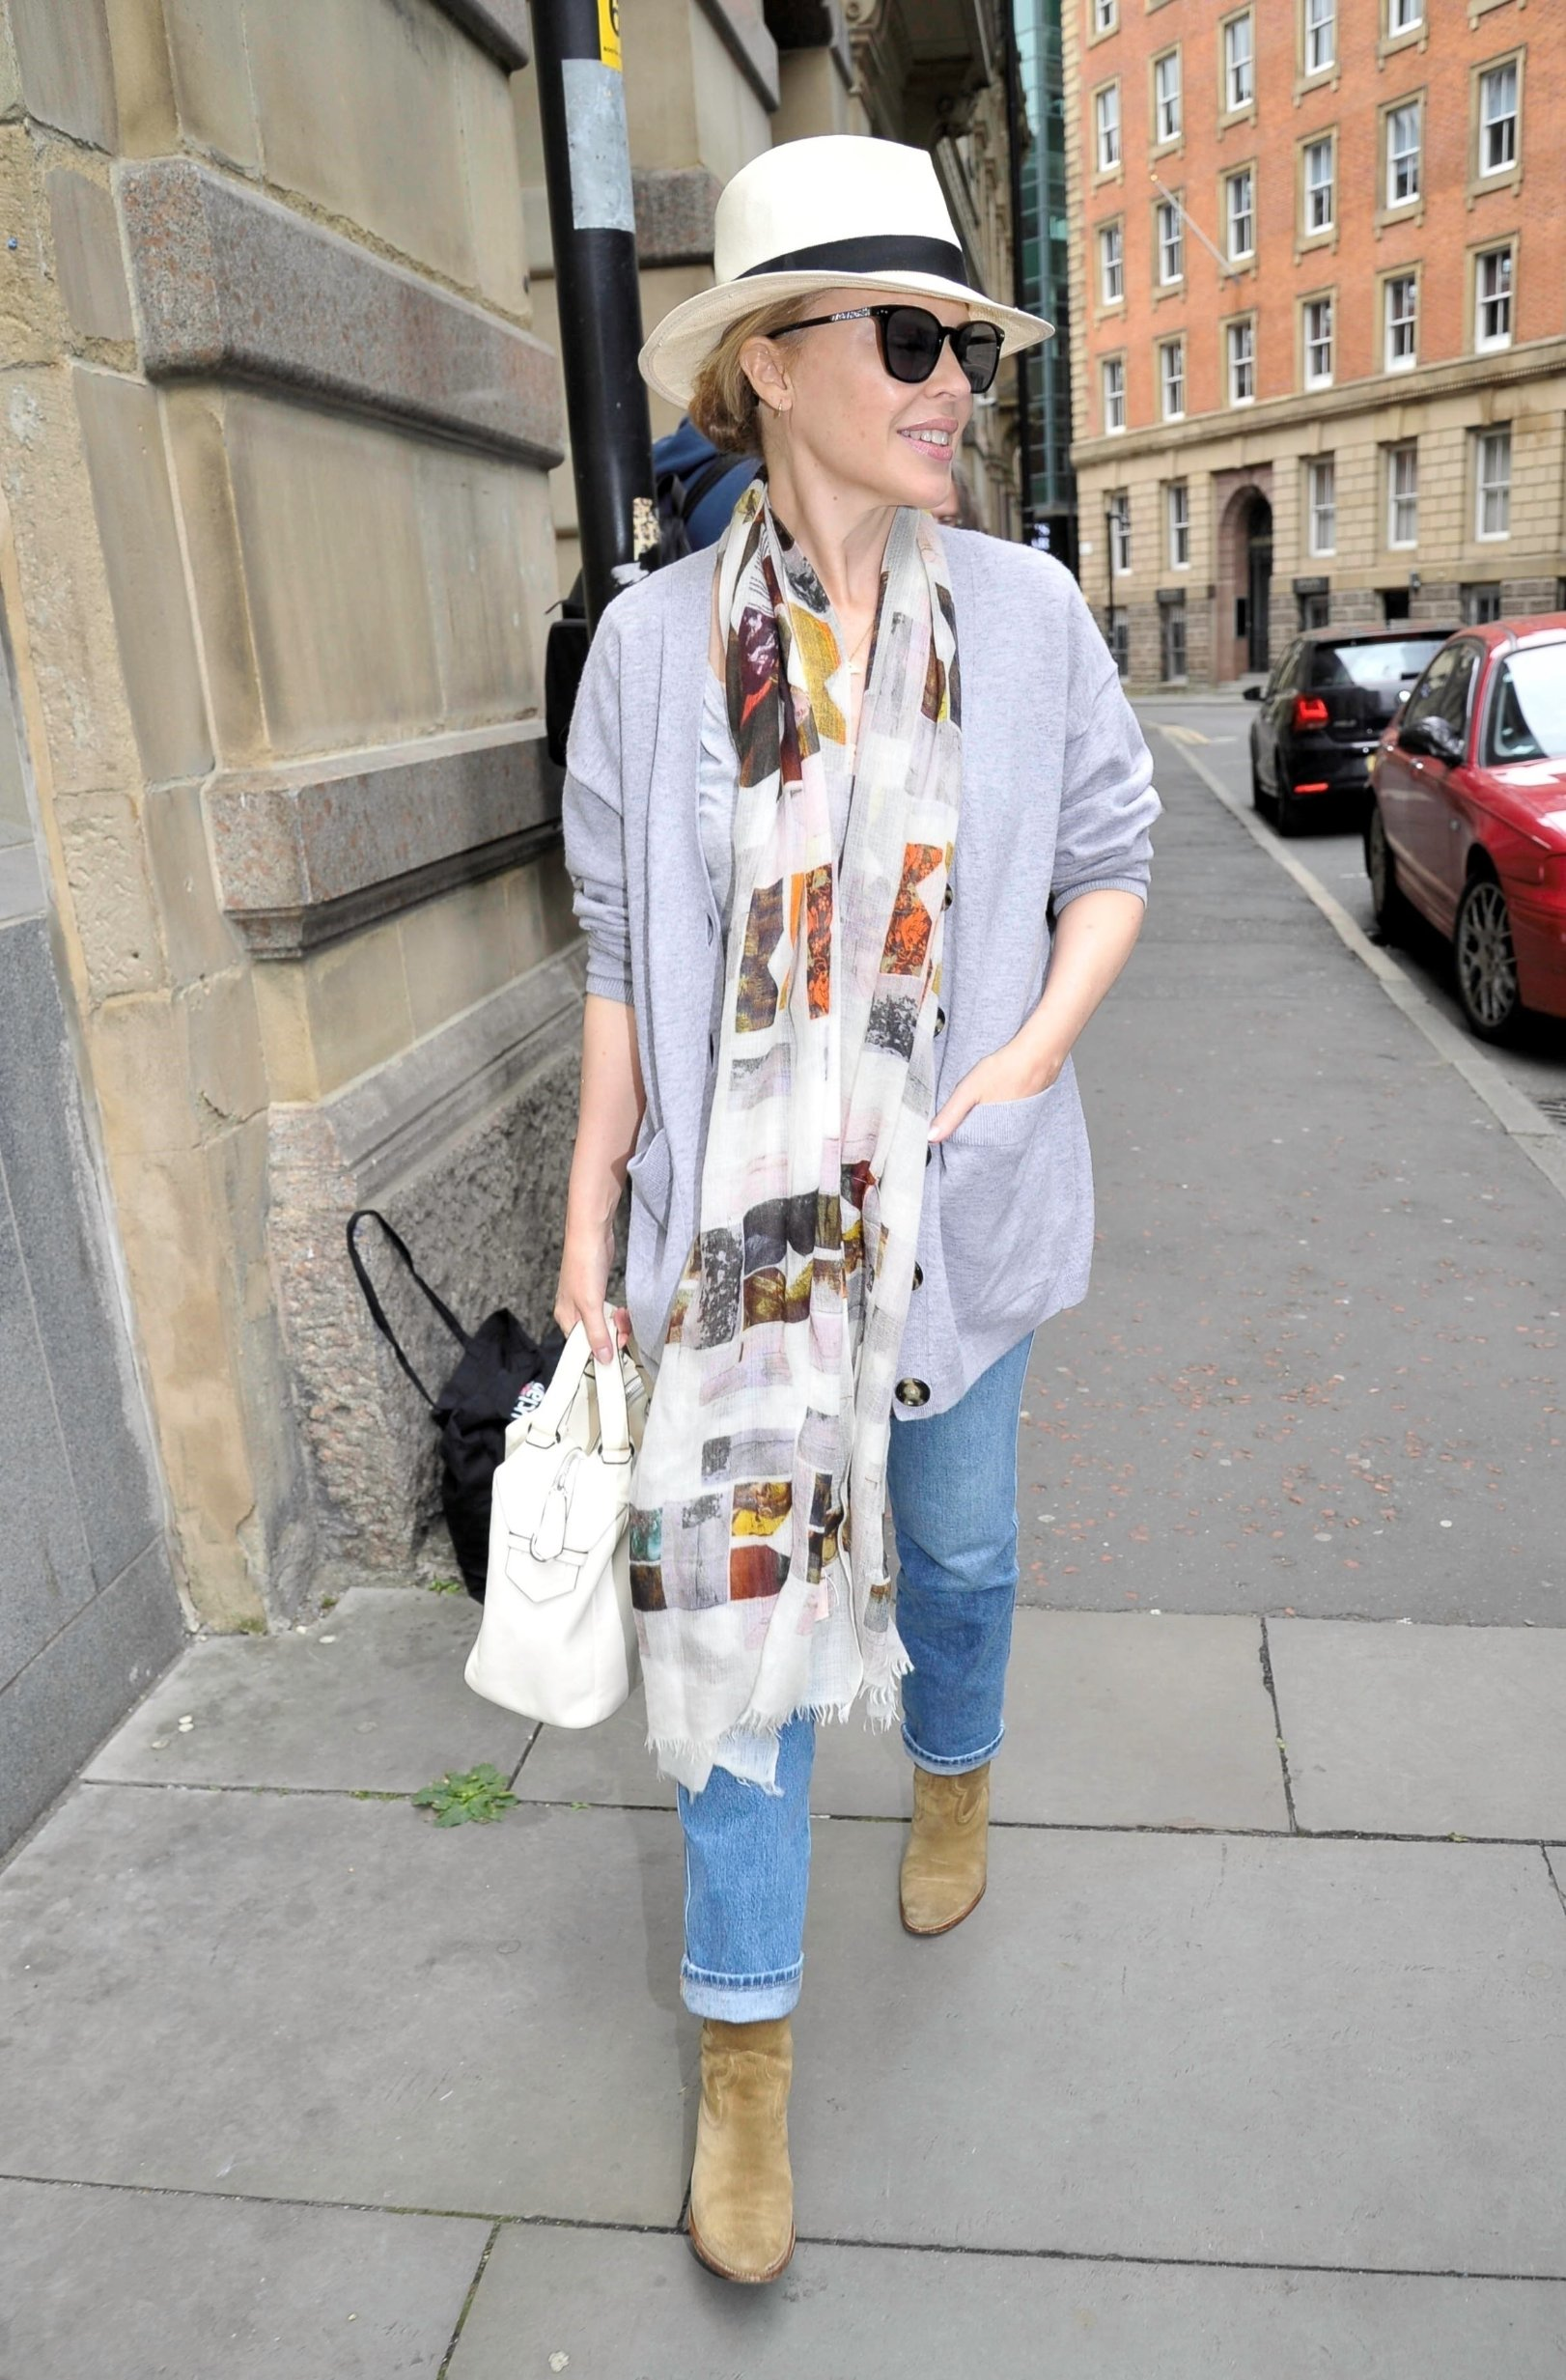 Manchester, UNITED KINGDOM  - Kylie Minogue pictured leaving hotel in Manchester, as she continues her tour and heads to Scotland.  BACKGRID UK 13 JULY 2019, Image: 458161957, License: Rights-managed, Restrictions: , Model Release: no, Credit line: Profimedia, Backgrid UK